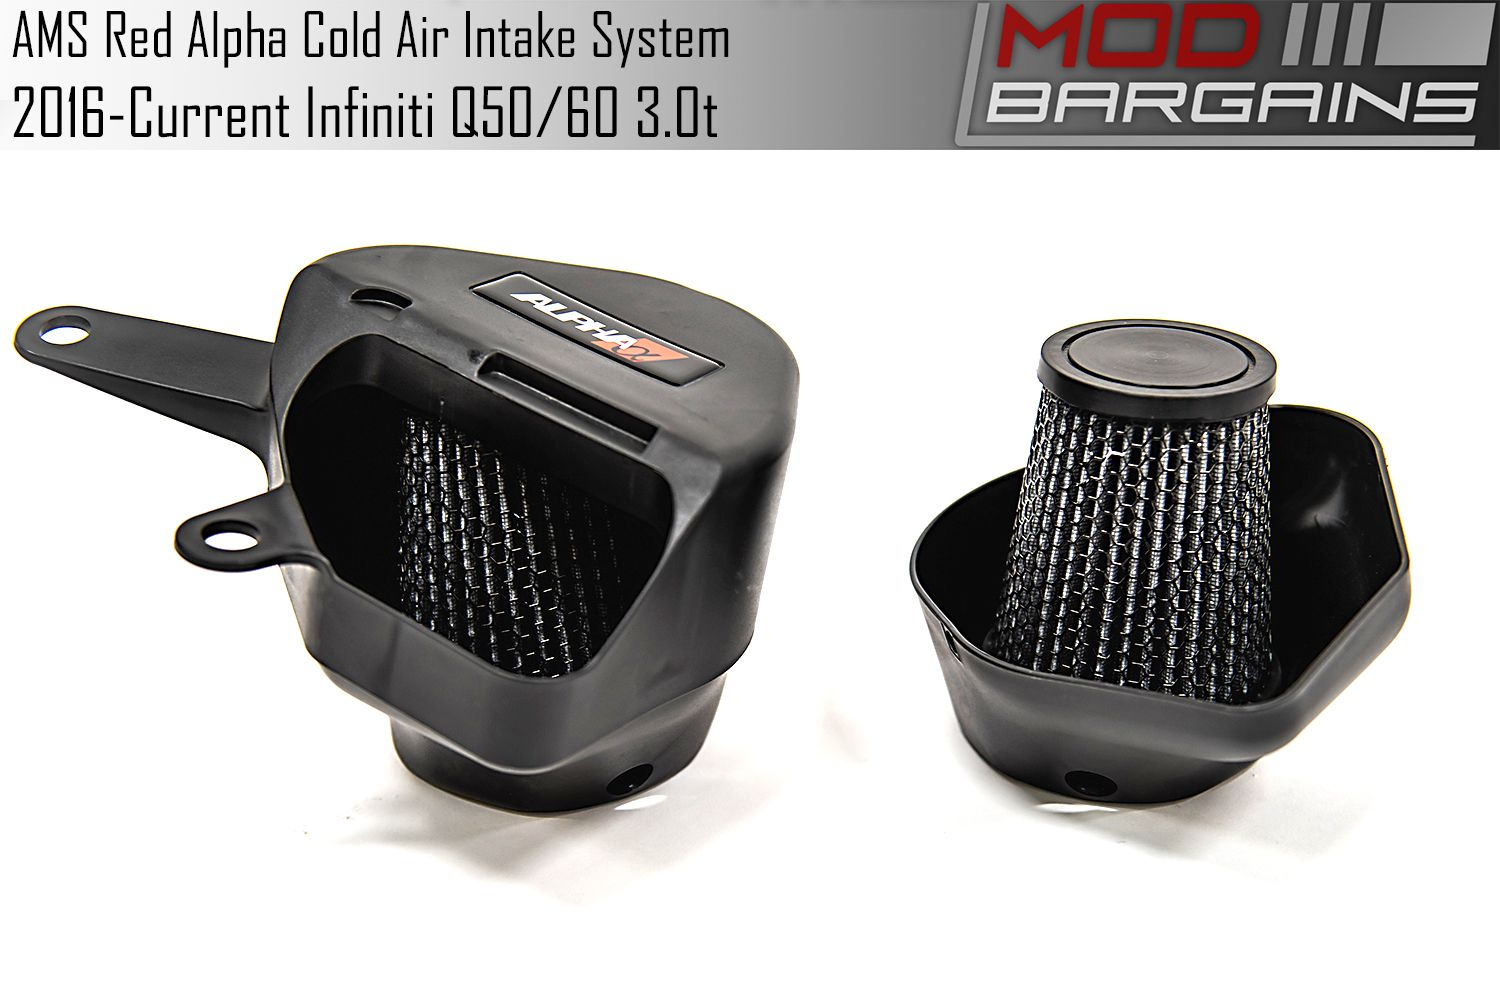 AMS Red Alpha Cold Air Intake for 2016+ Infiniti Q50/Q60 3.0t